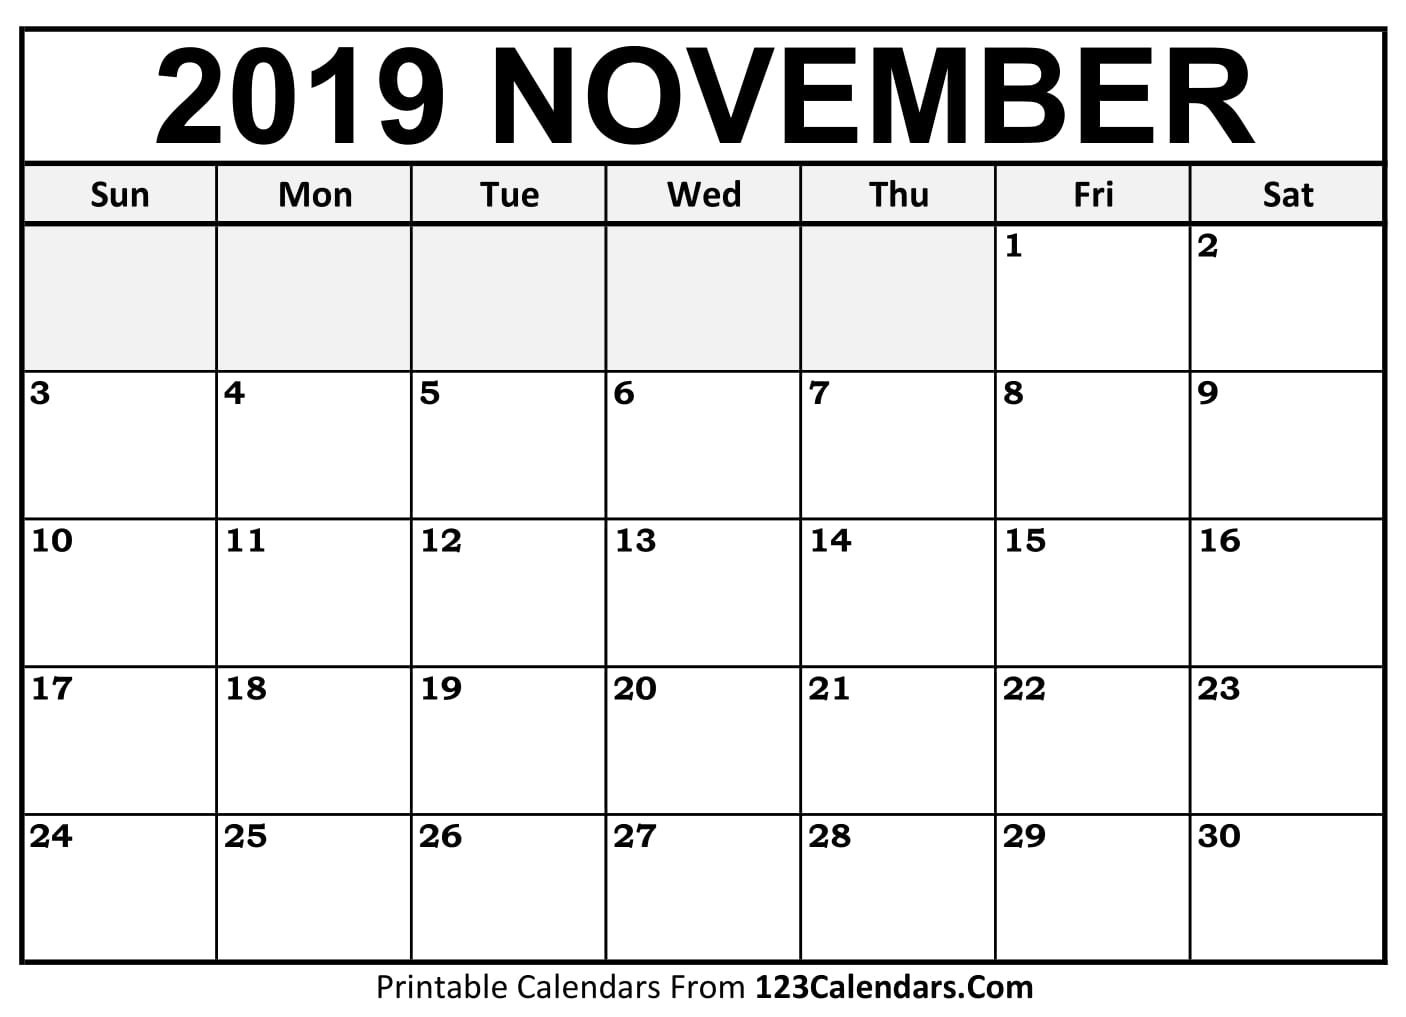 image regarding Printable November Calendar Pdf called November 2019 Printable Calendar